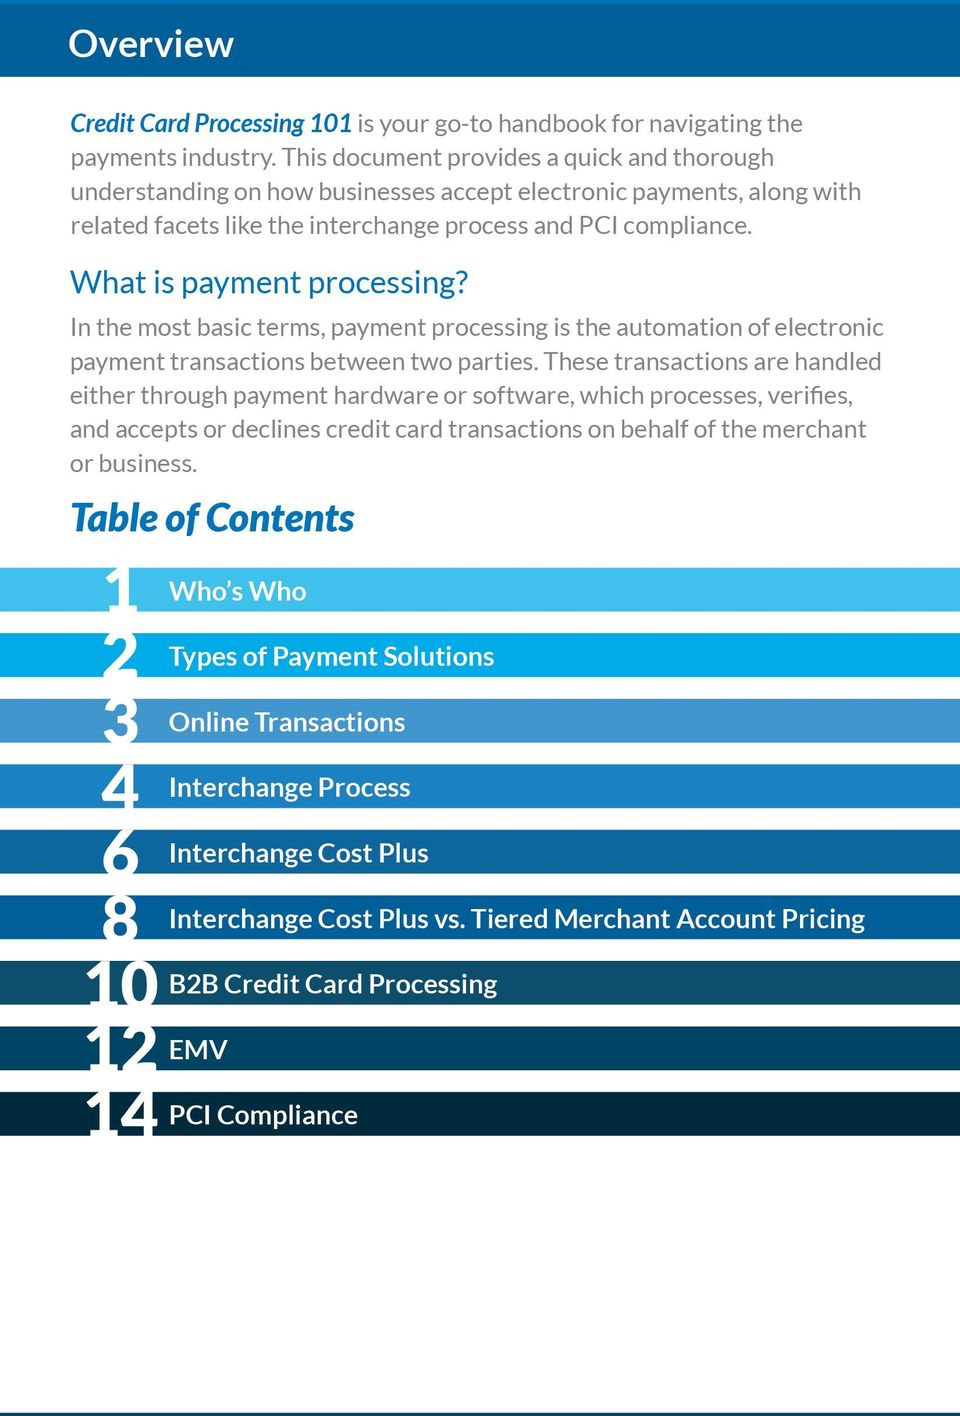 What is payment processing? In the most basic terms, payment processing is the automation of electronic payment transactions between two parties.